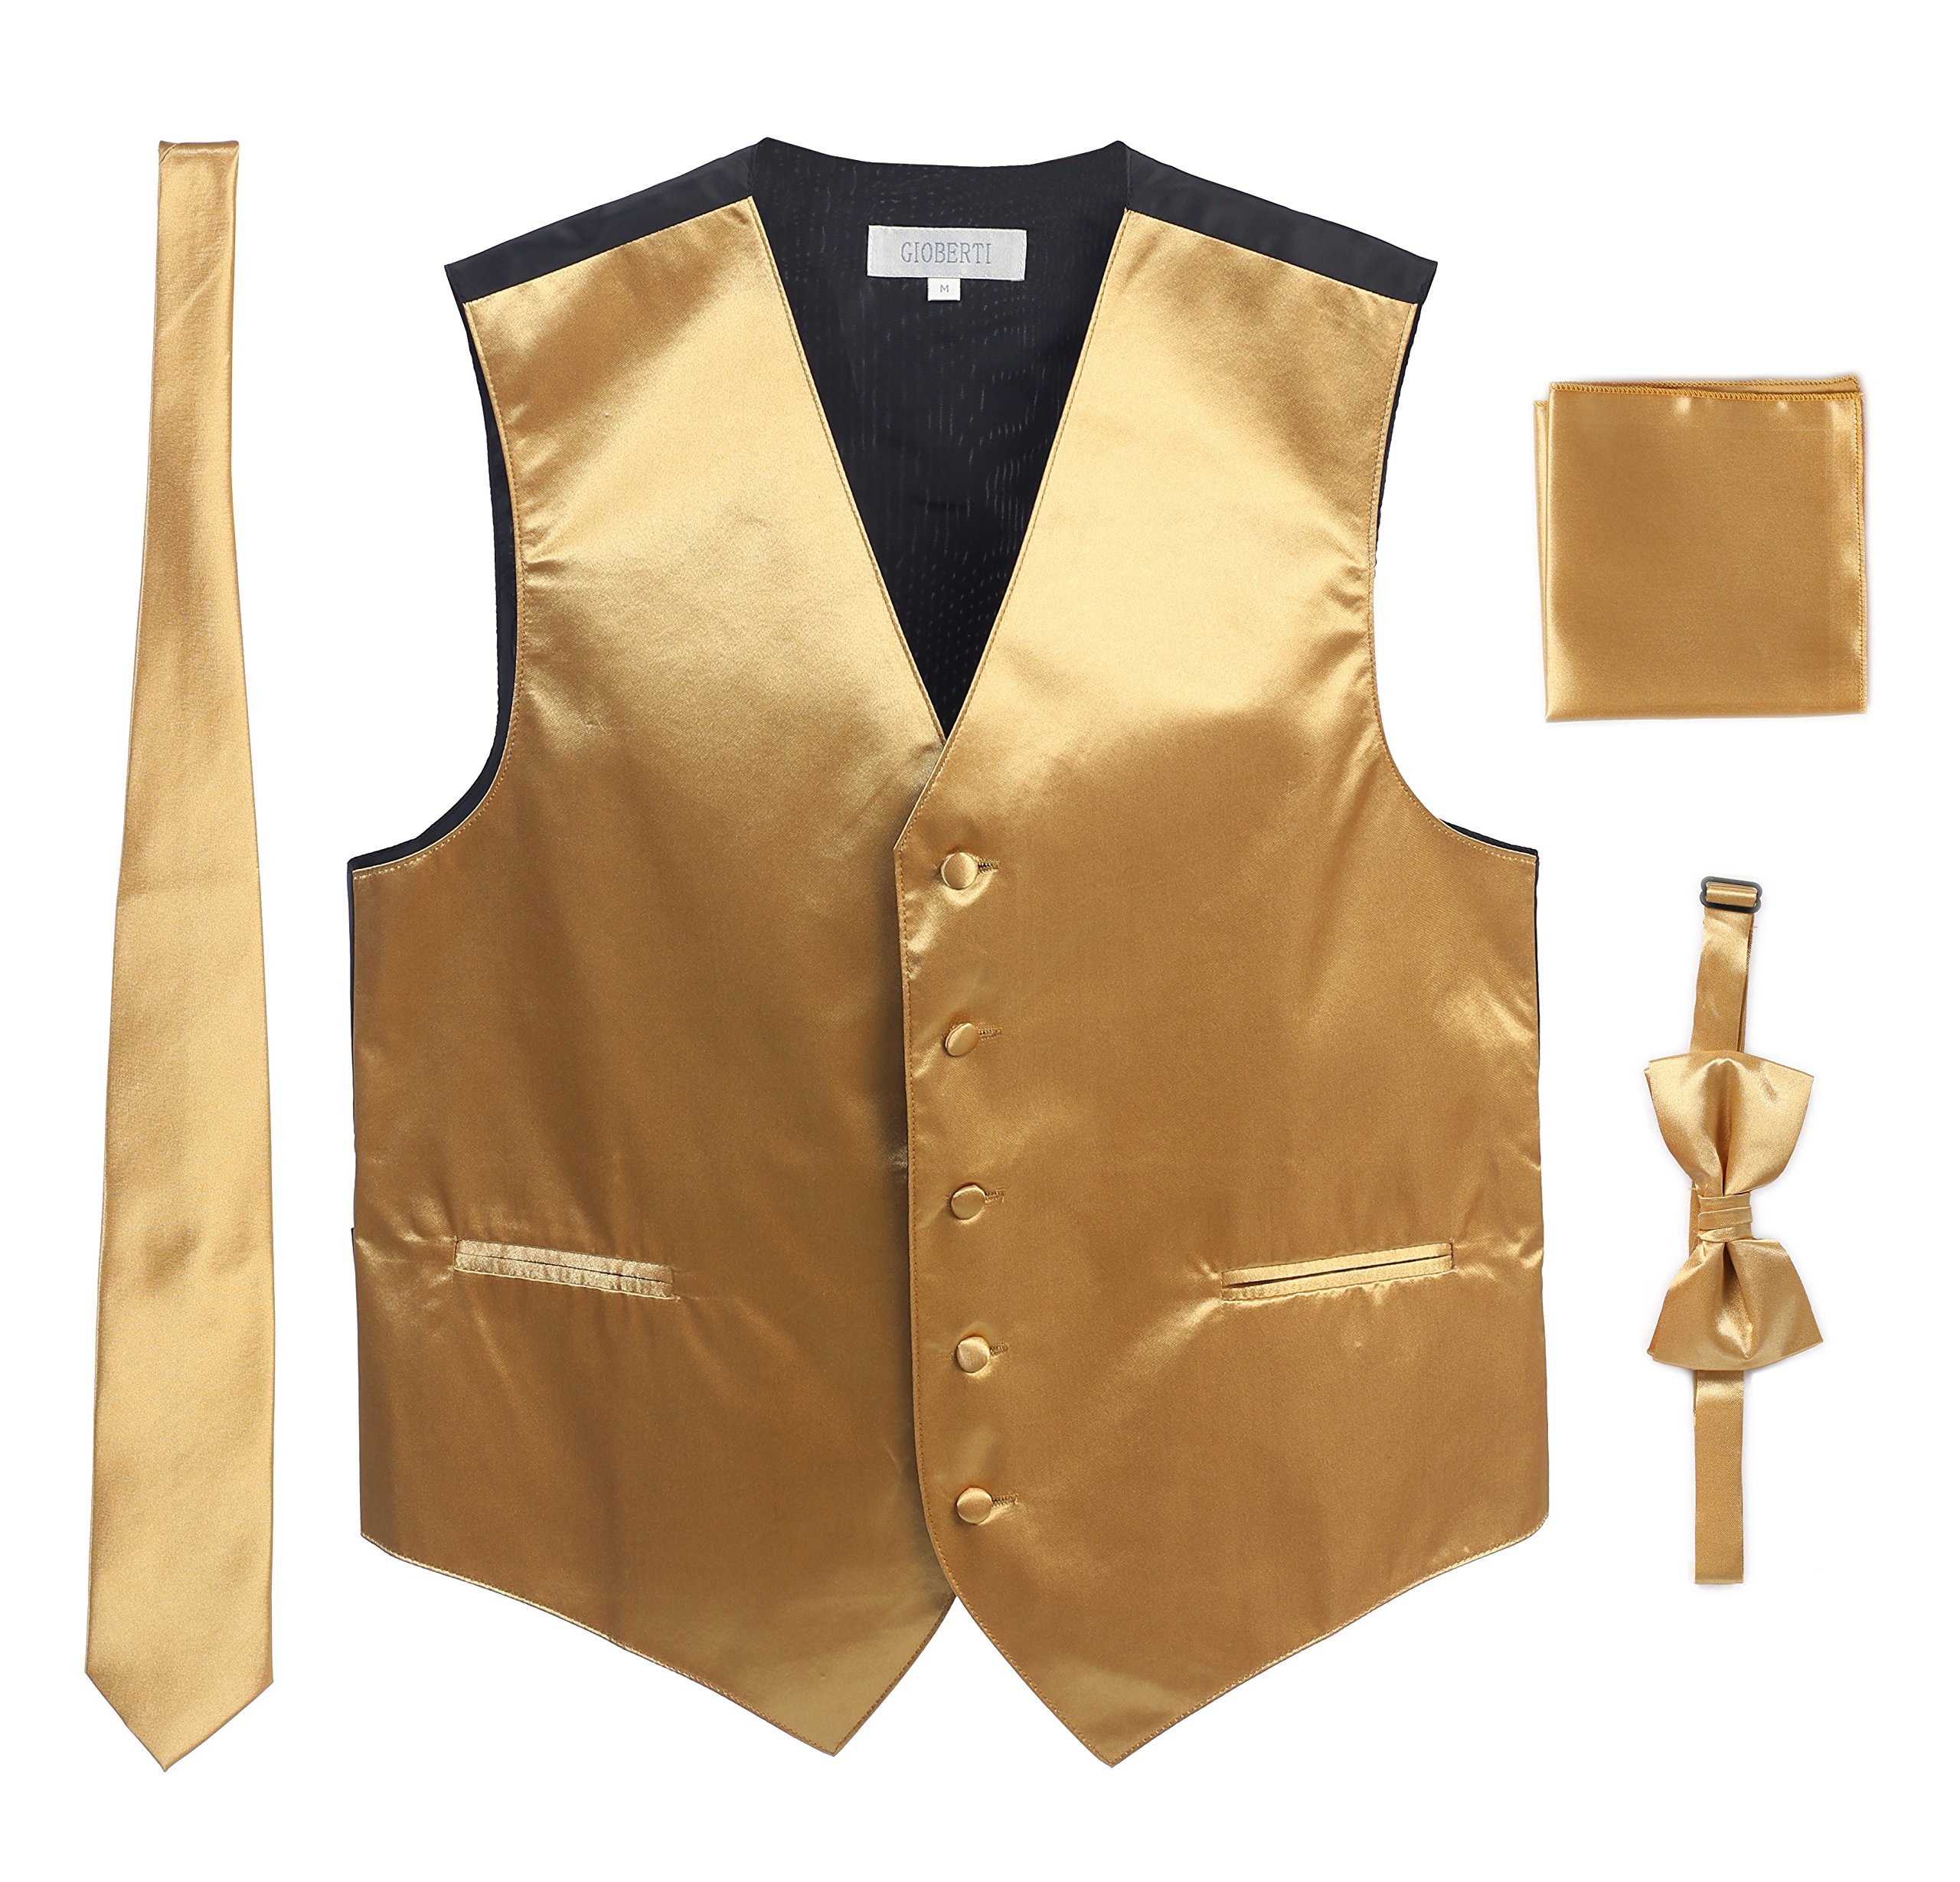 Men's Formal Vest Set, Bowtie, Tie, Pocket Square, Gold, Medium